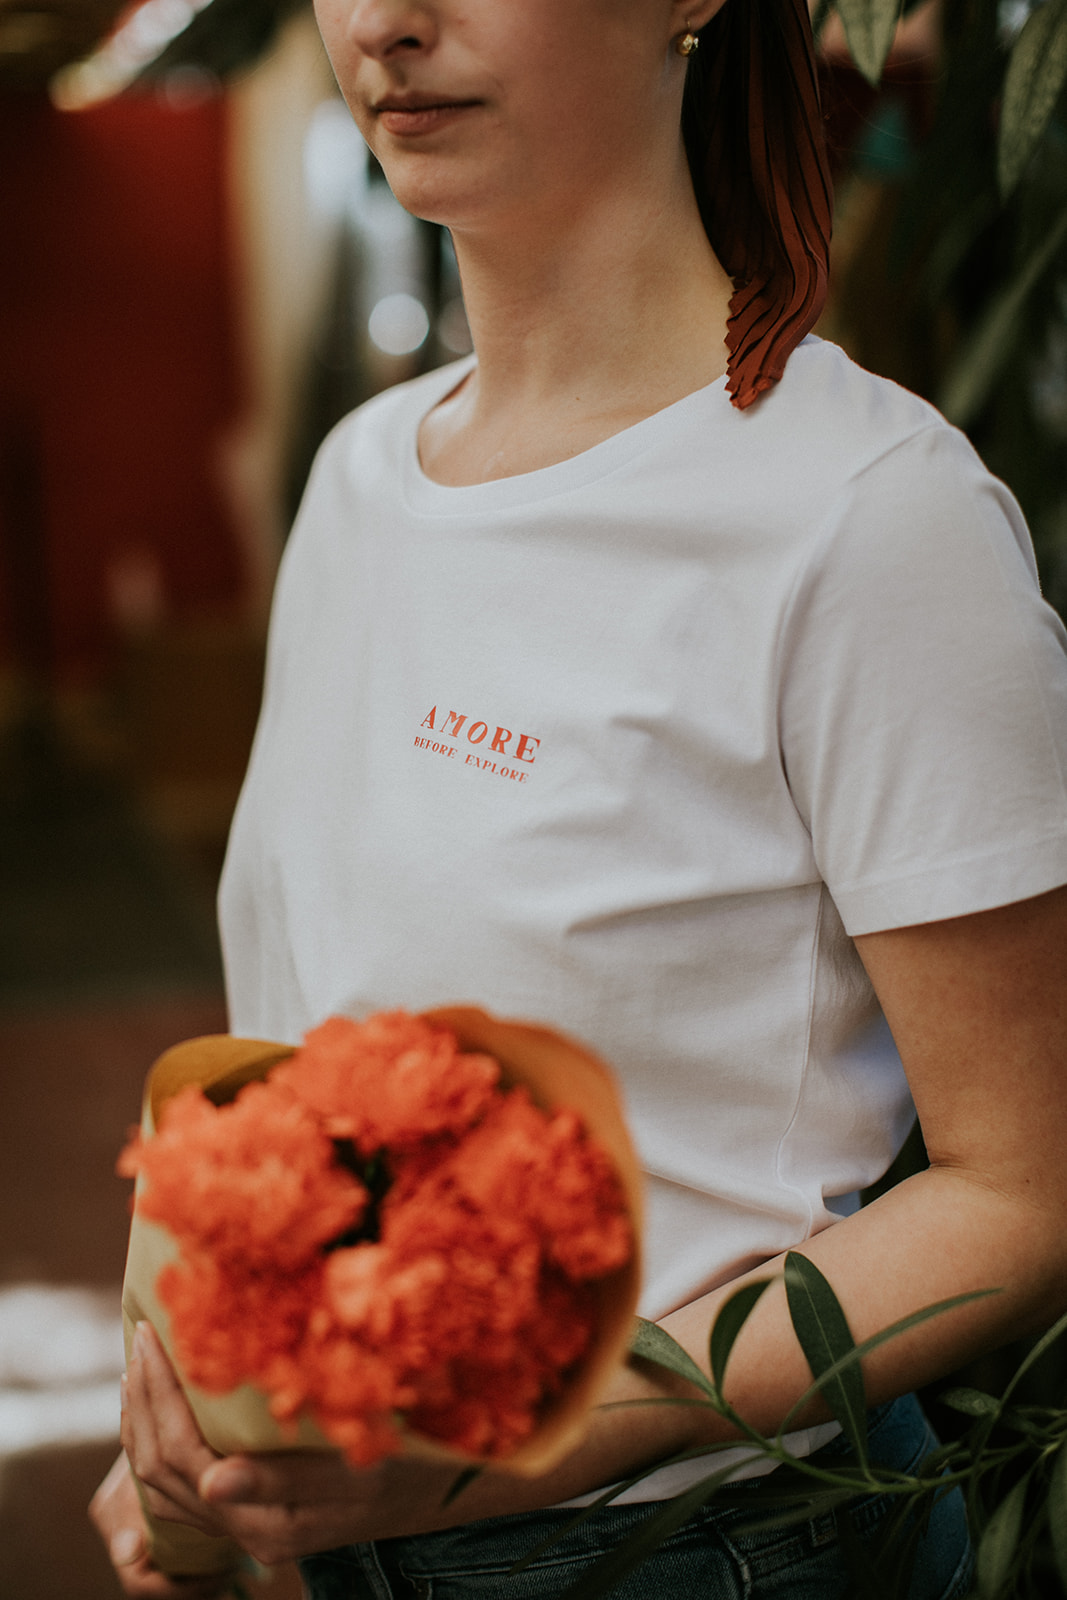 Amore before explore t-shirt